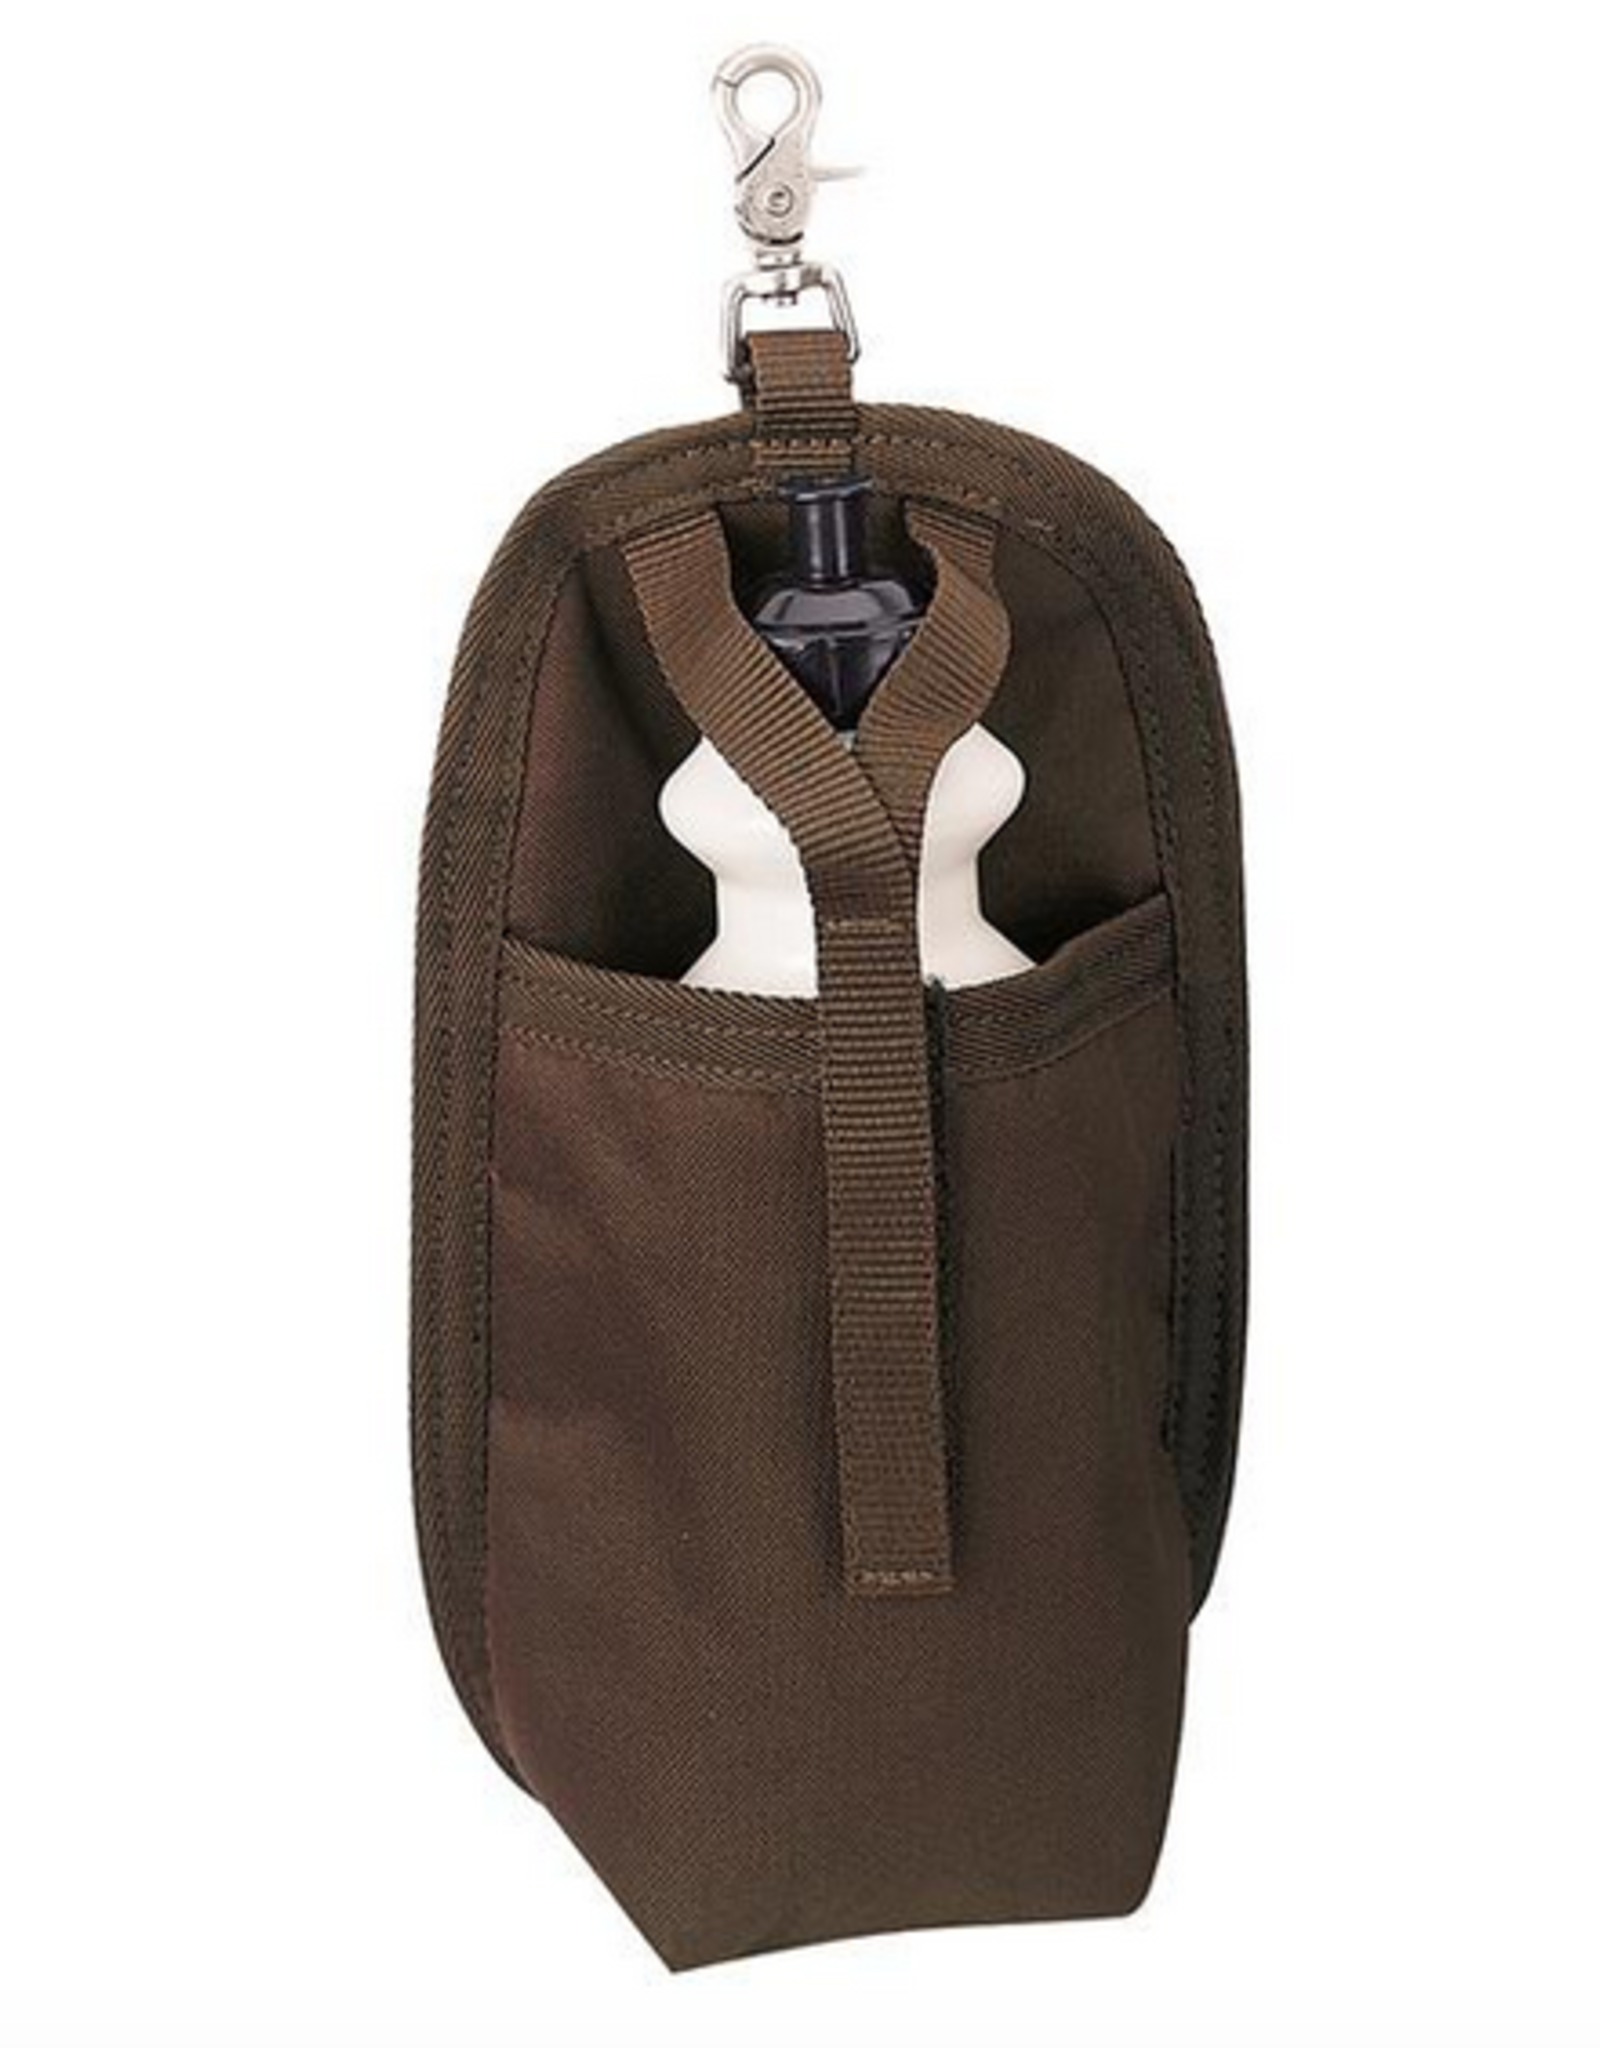 Weaver Clip On Holster with Water Bottle